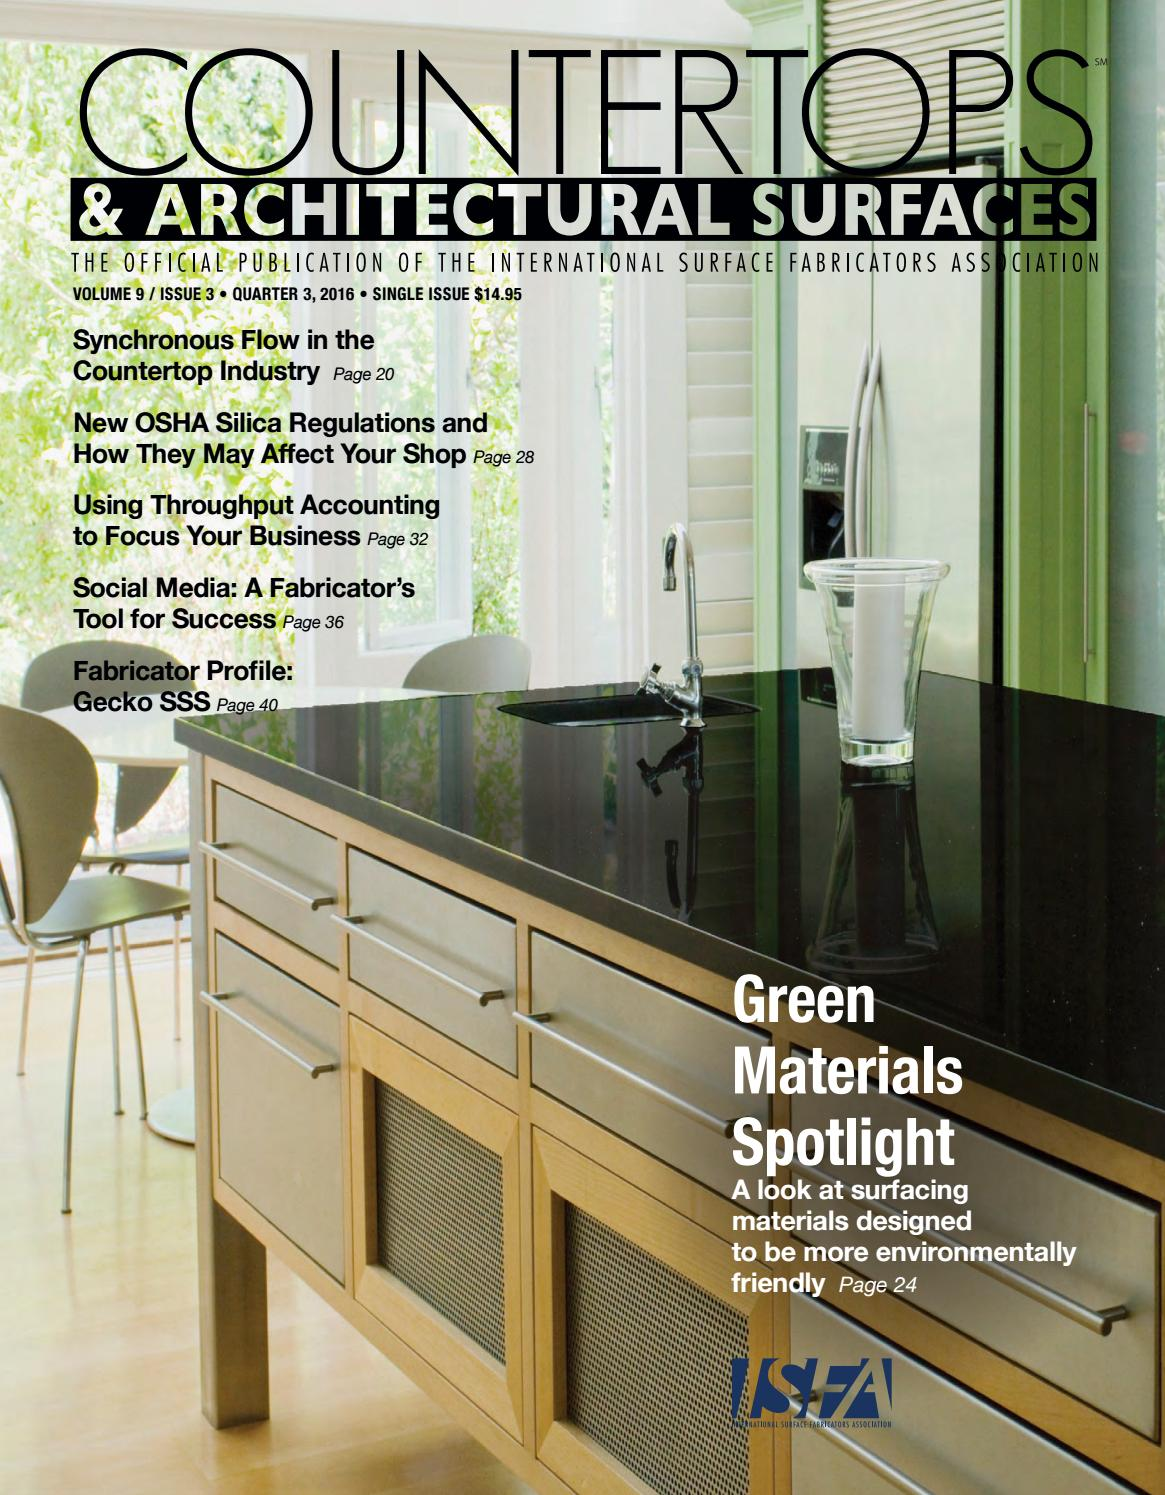 Isfa S Countertops Architectural Surfaces Vol 9 Issue 3 Q3 2016 By Isfa Issuu